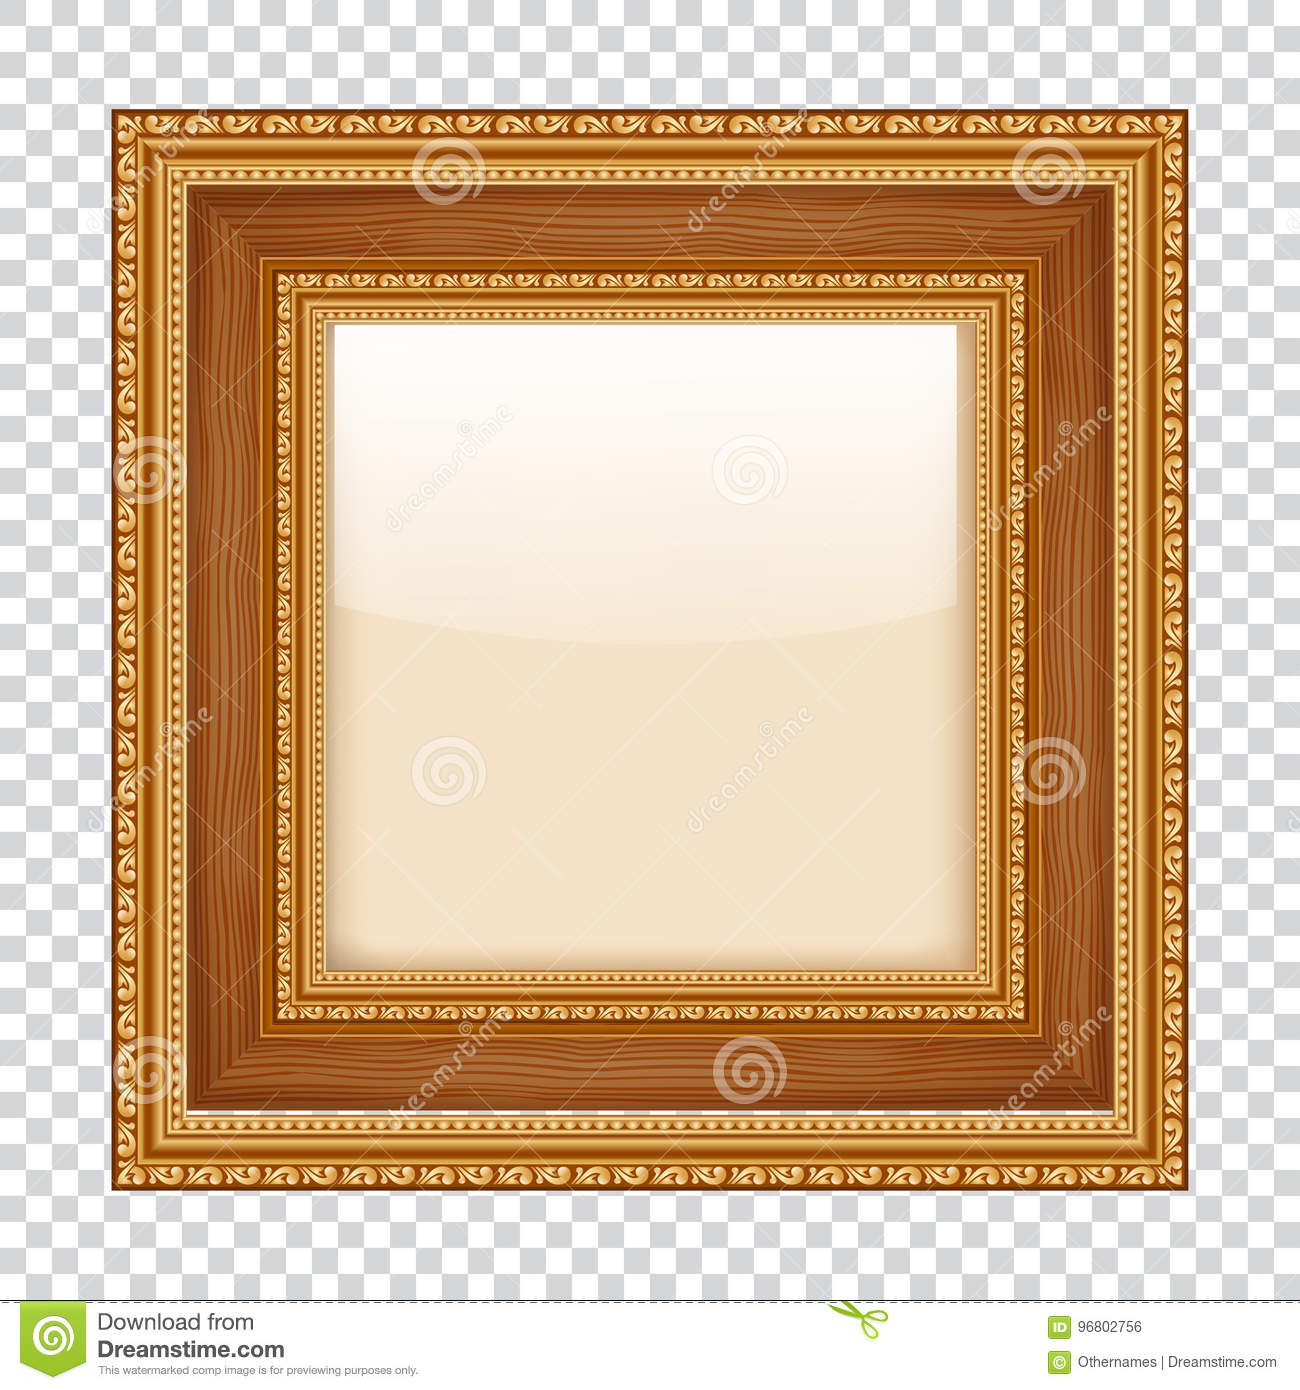 f4e6e22965cb Royalty-Free Vector. Empty gold frame on transparent background. wooden  frame